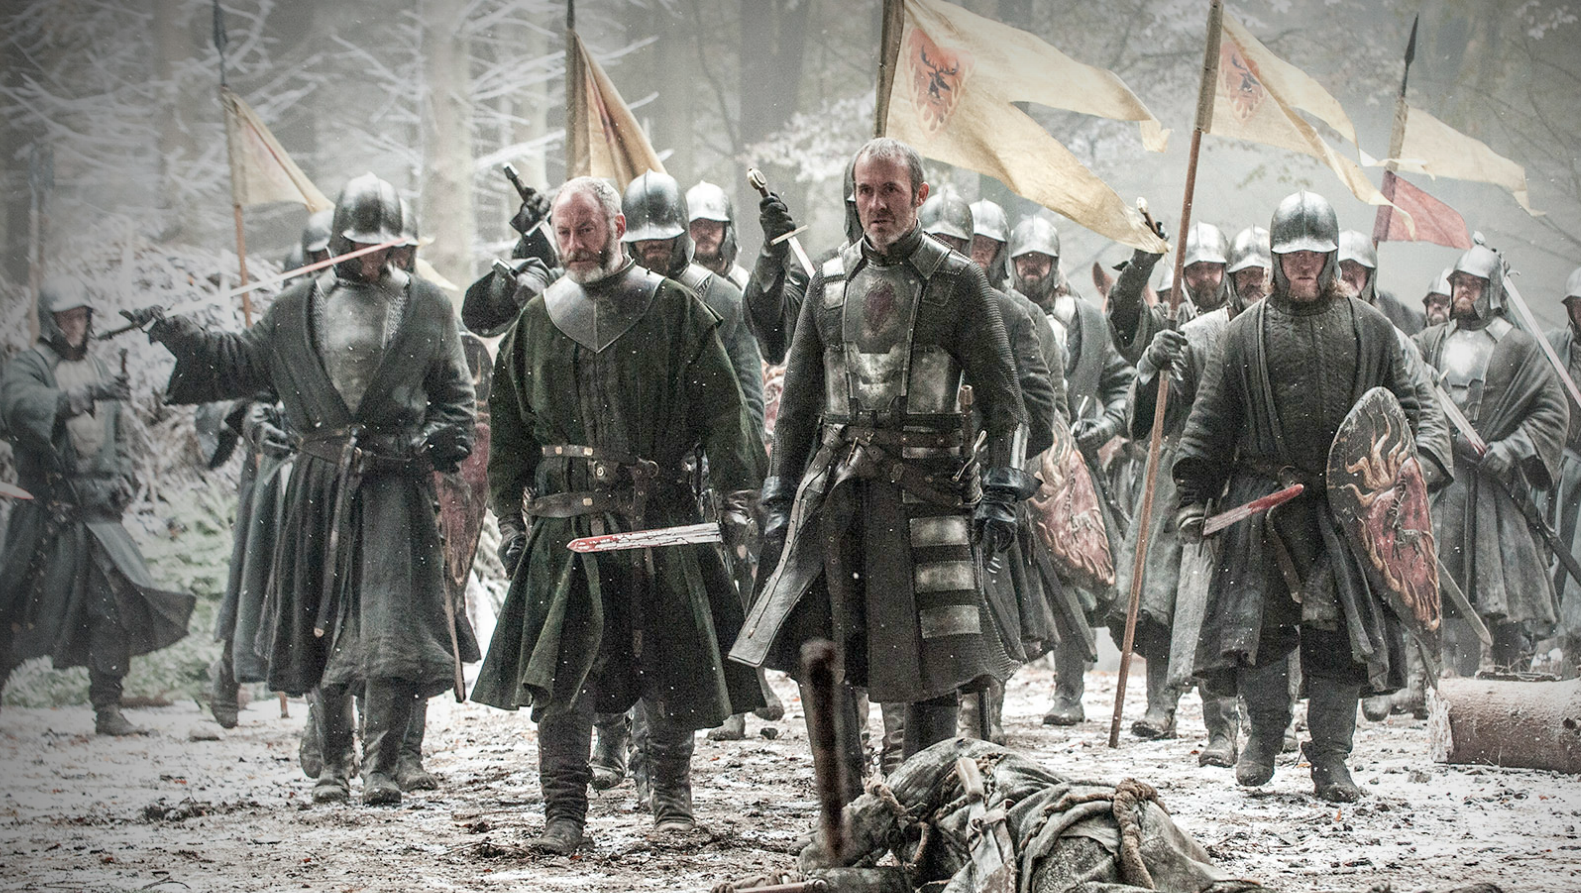 Liam Cunningham as Davos Seaworth (center left) and Stephen Dillane as Stannis Baratheon (center right)